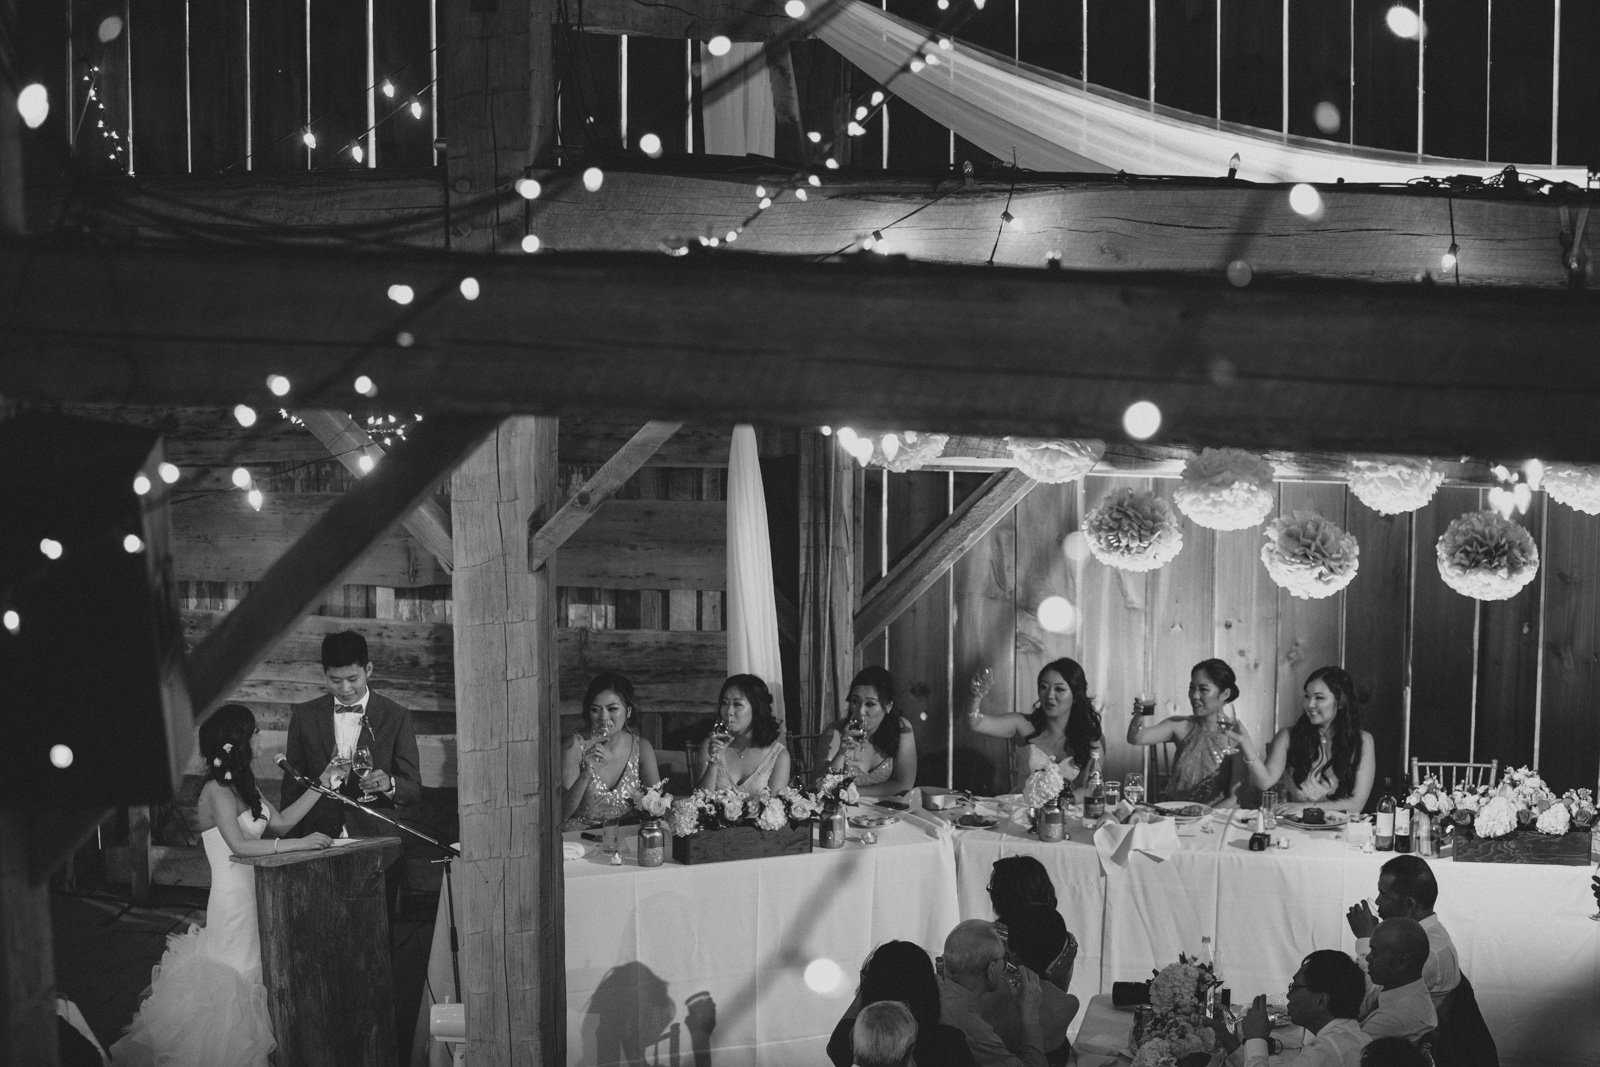 cambium-farms-wedding-photography-by-sam-wong-of-artanis-collective_56